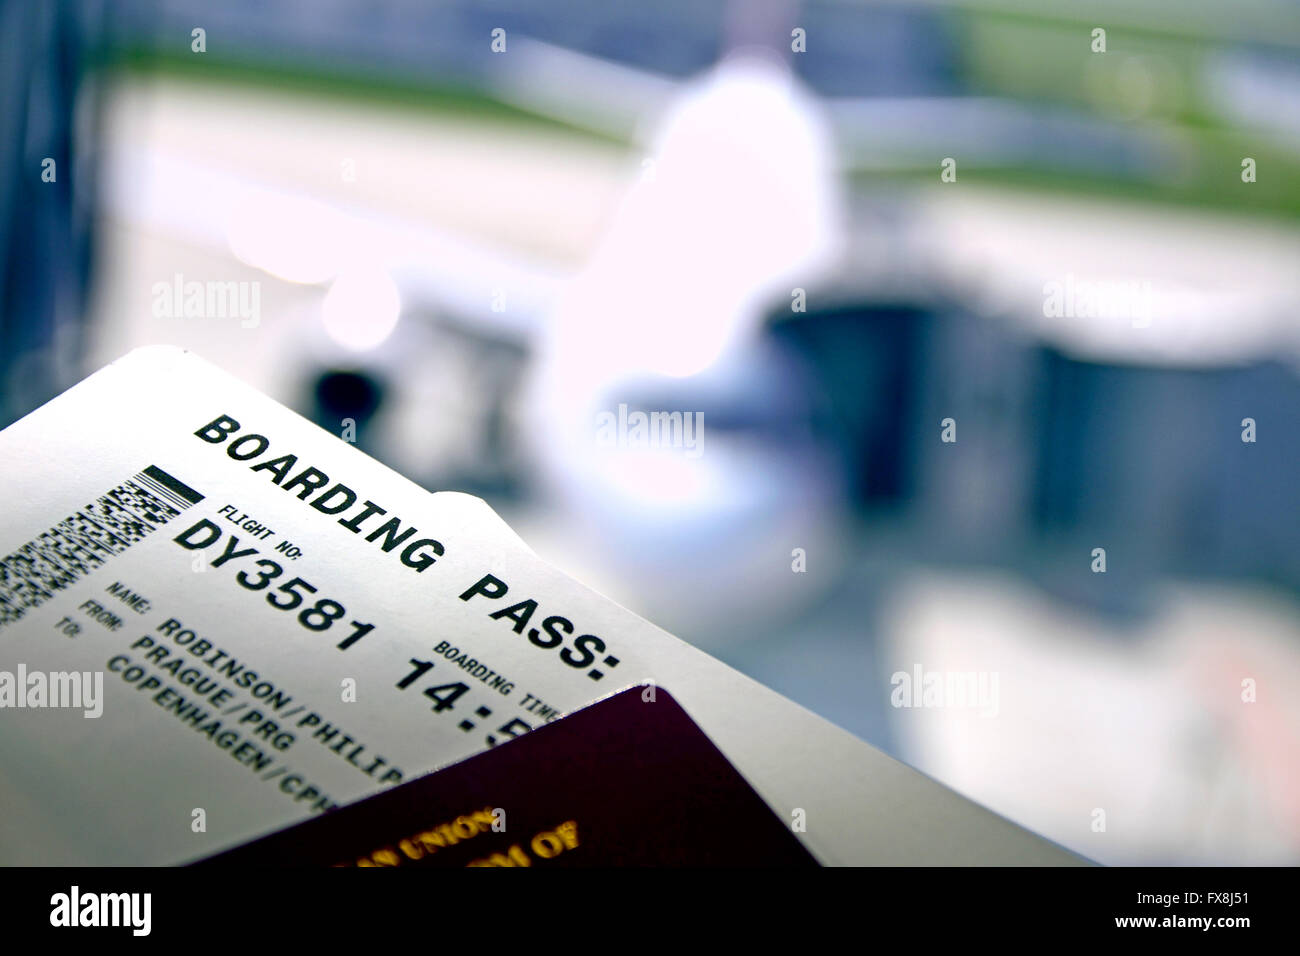 Uk Passport Boarding Pass Stock Photos & Uk Passport